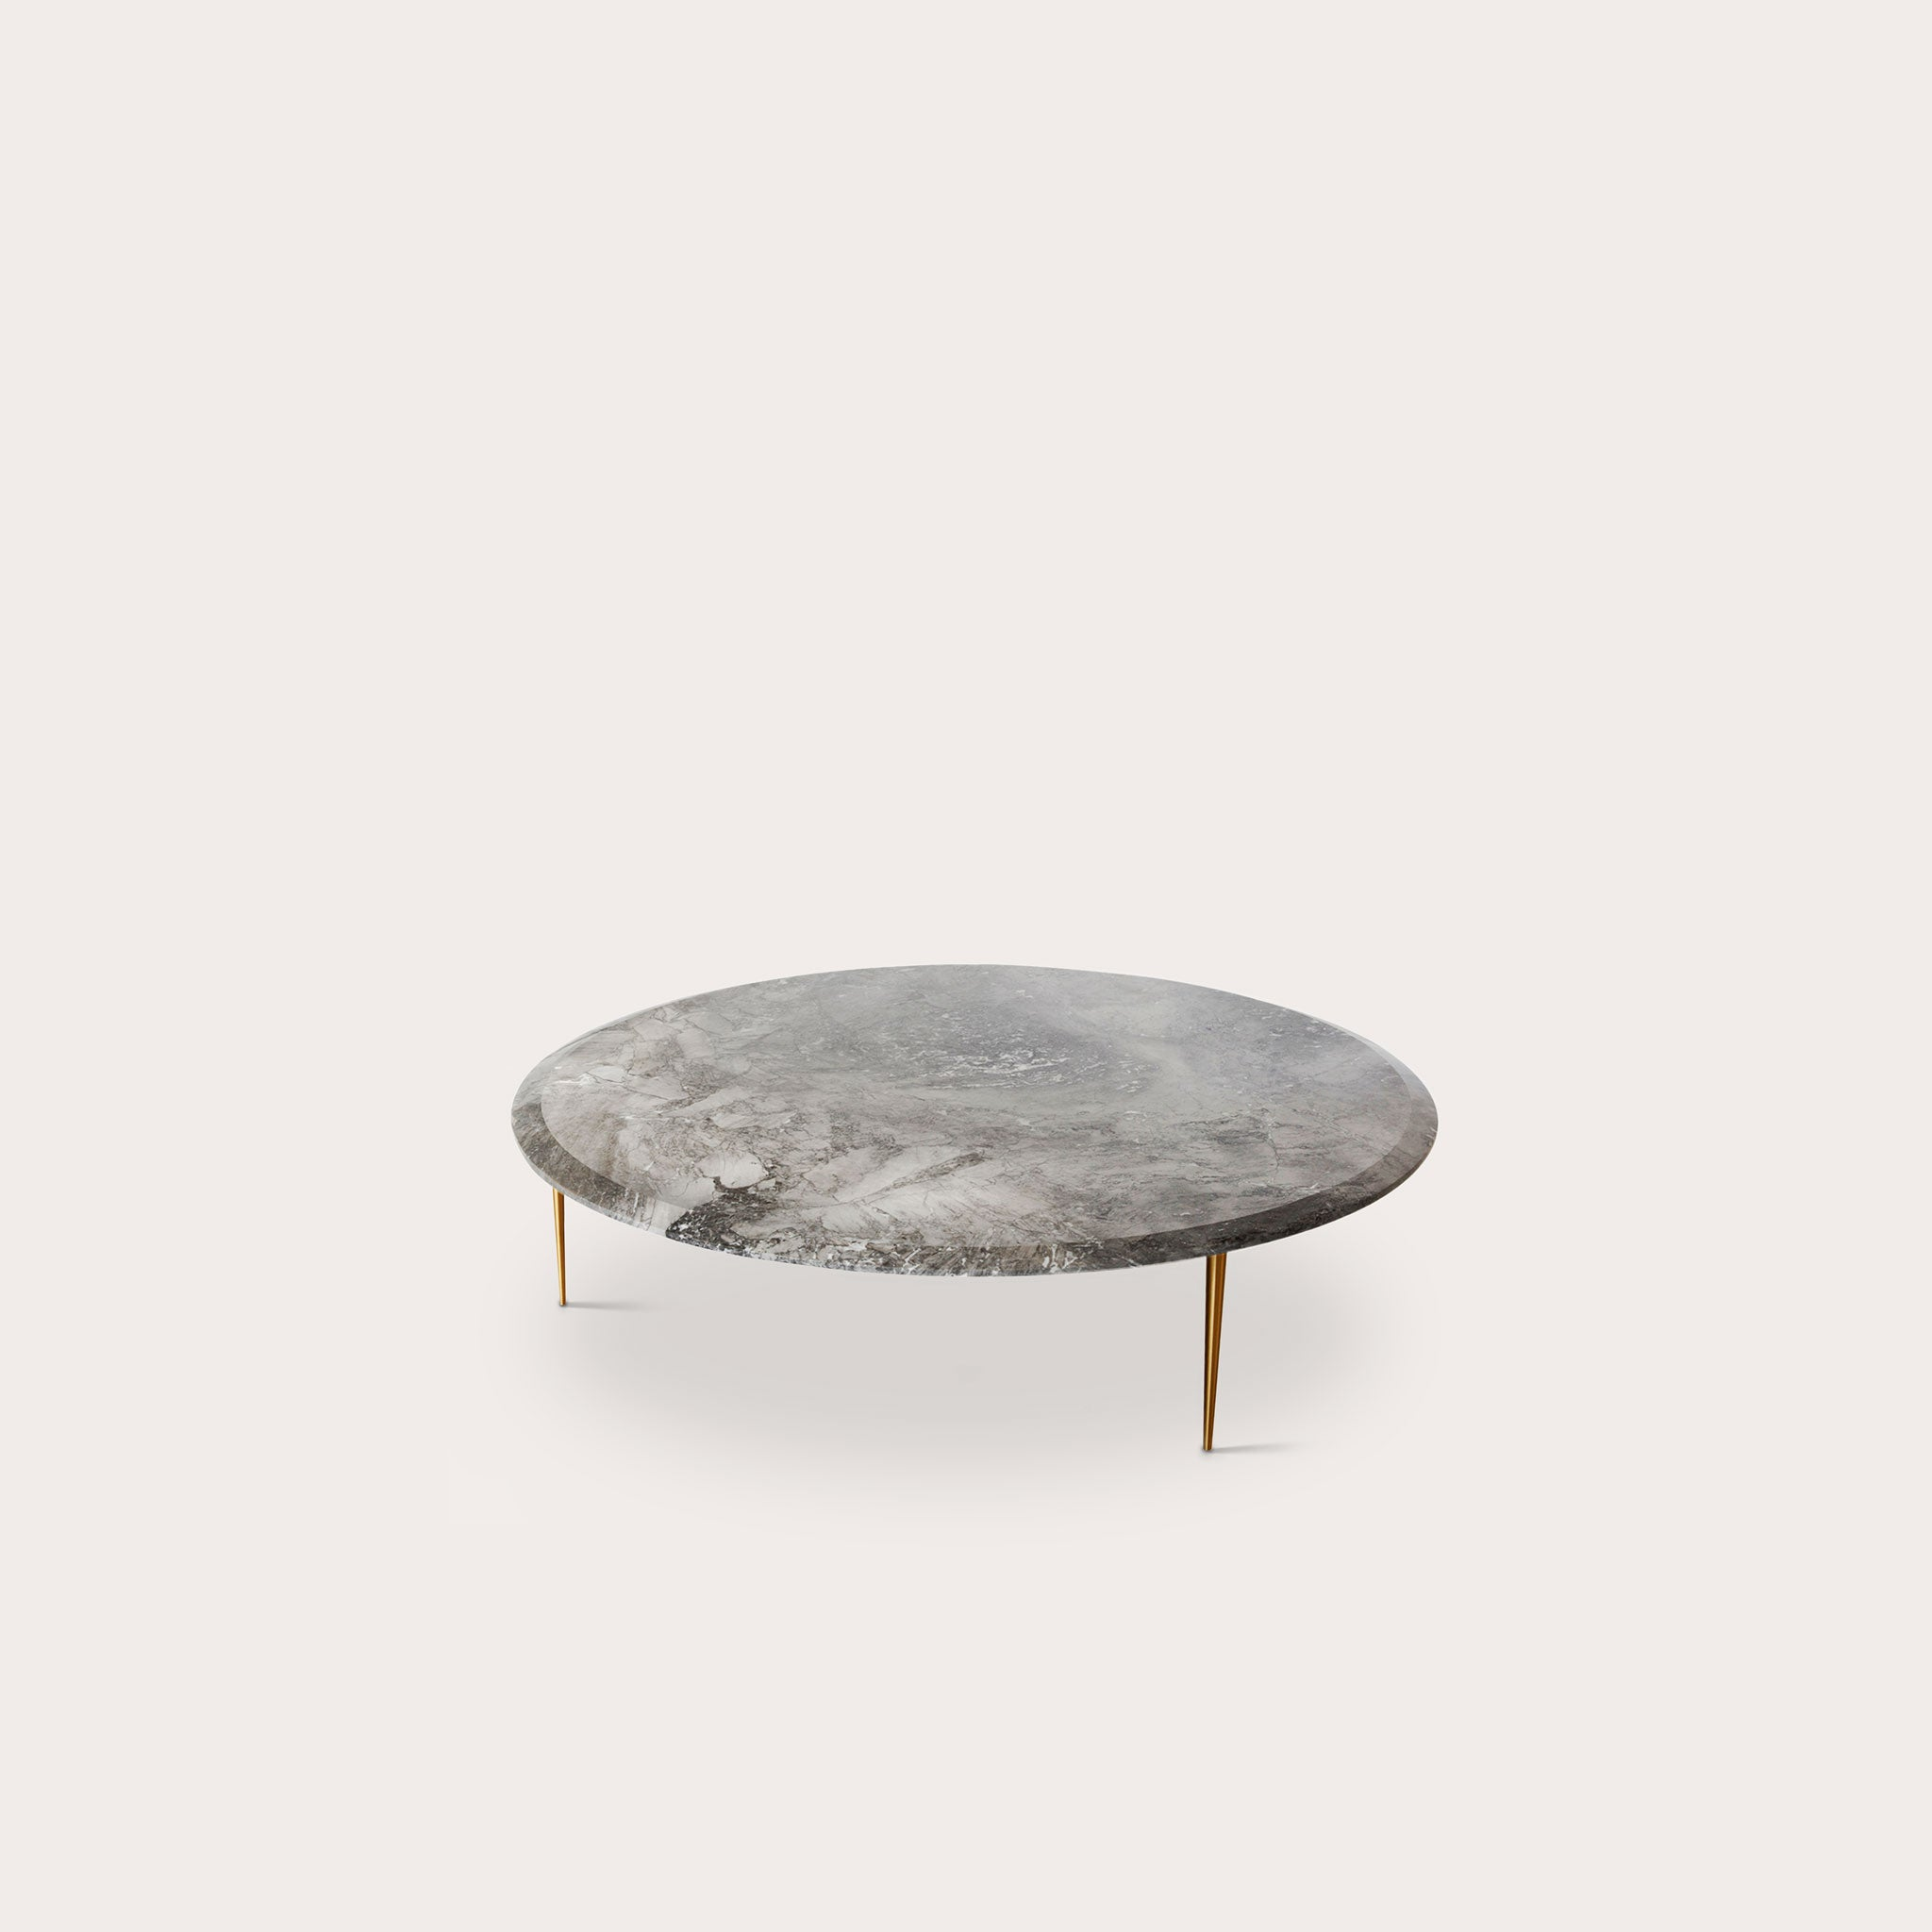 Moon Coffee Tables Simone Coste Designer Furniture Sku: 992-230-10077